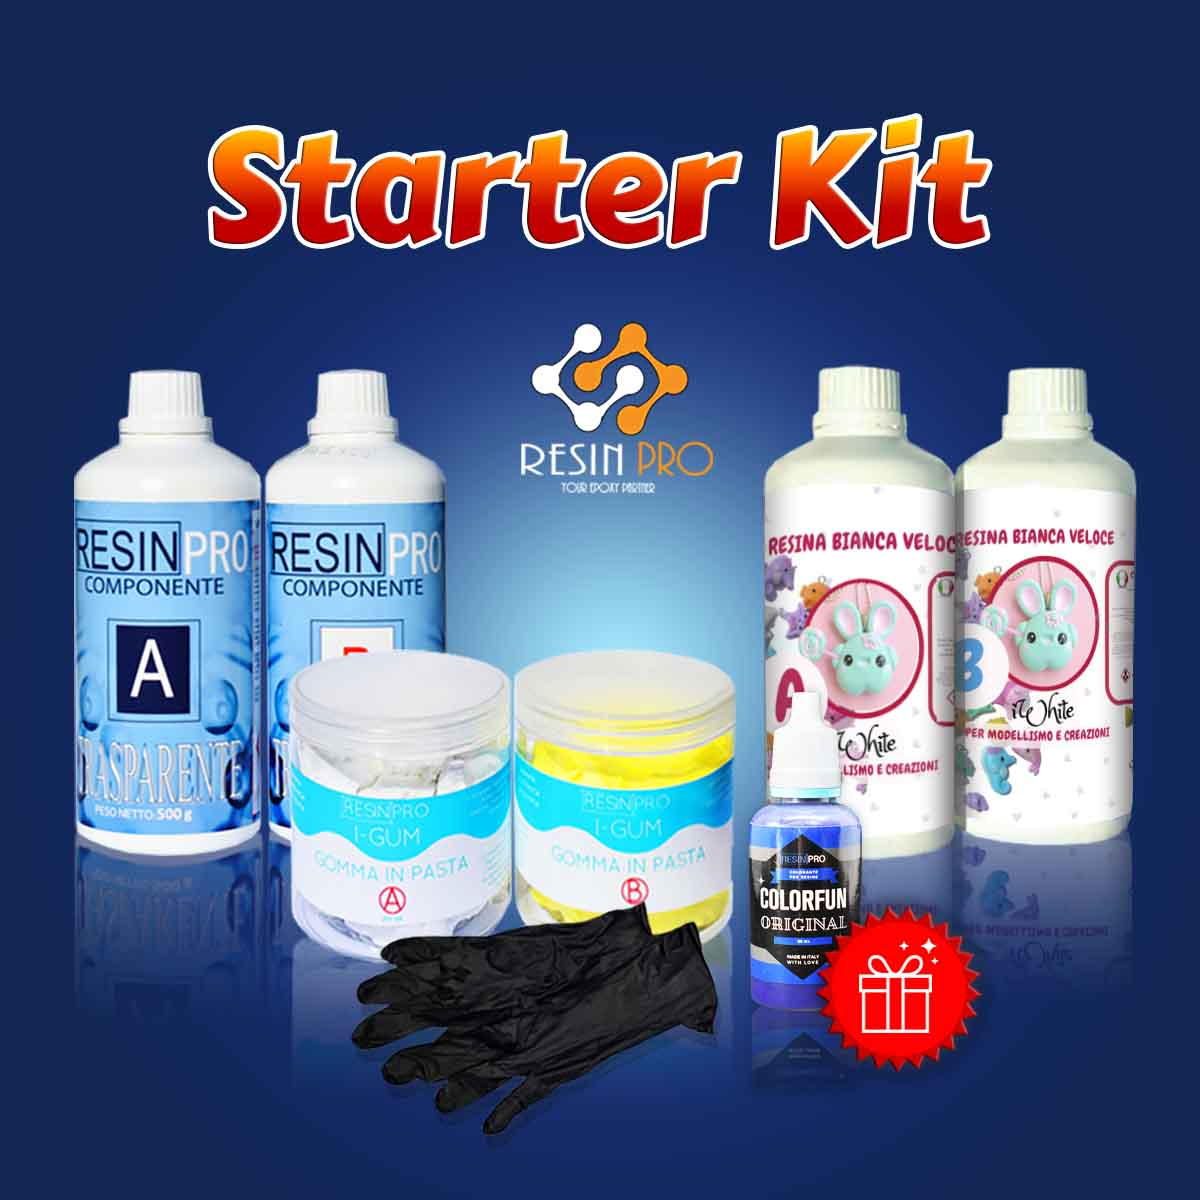 STARTER KIT with Silicone rubber in paste for moulds